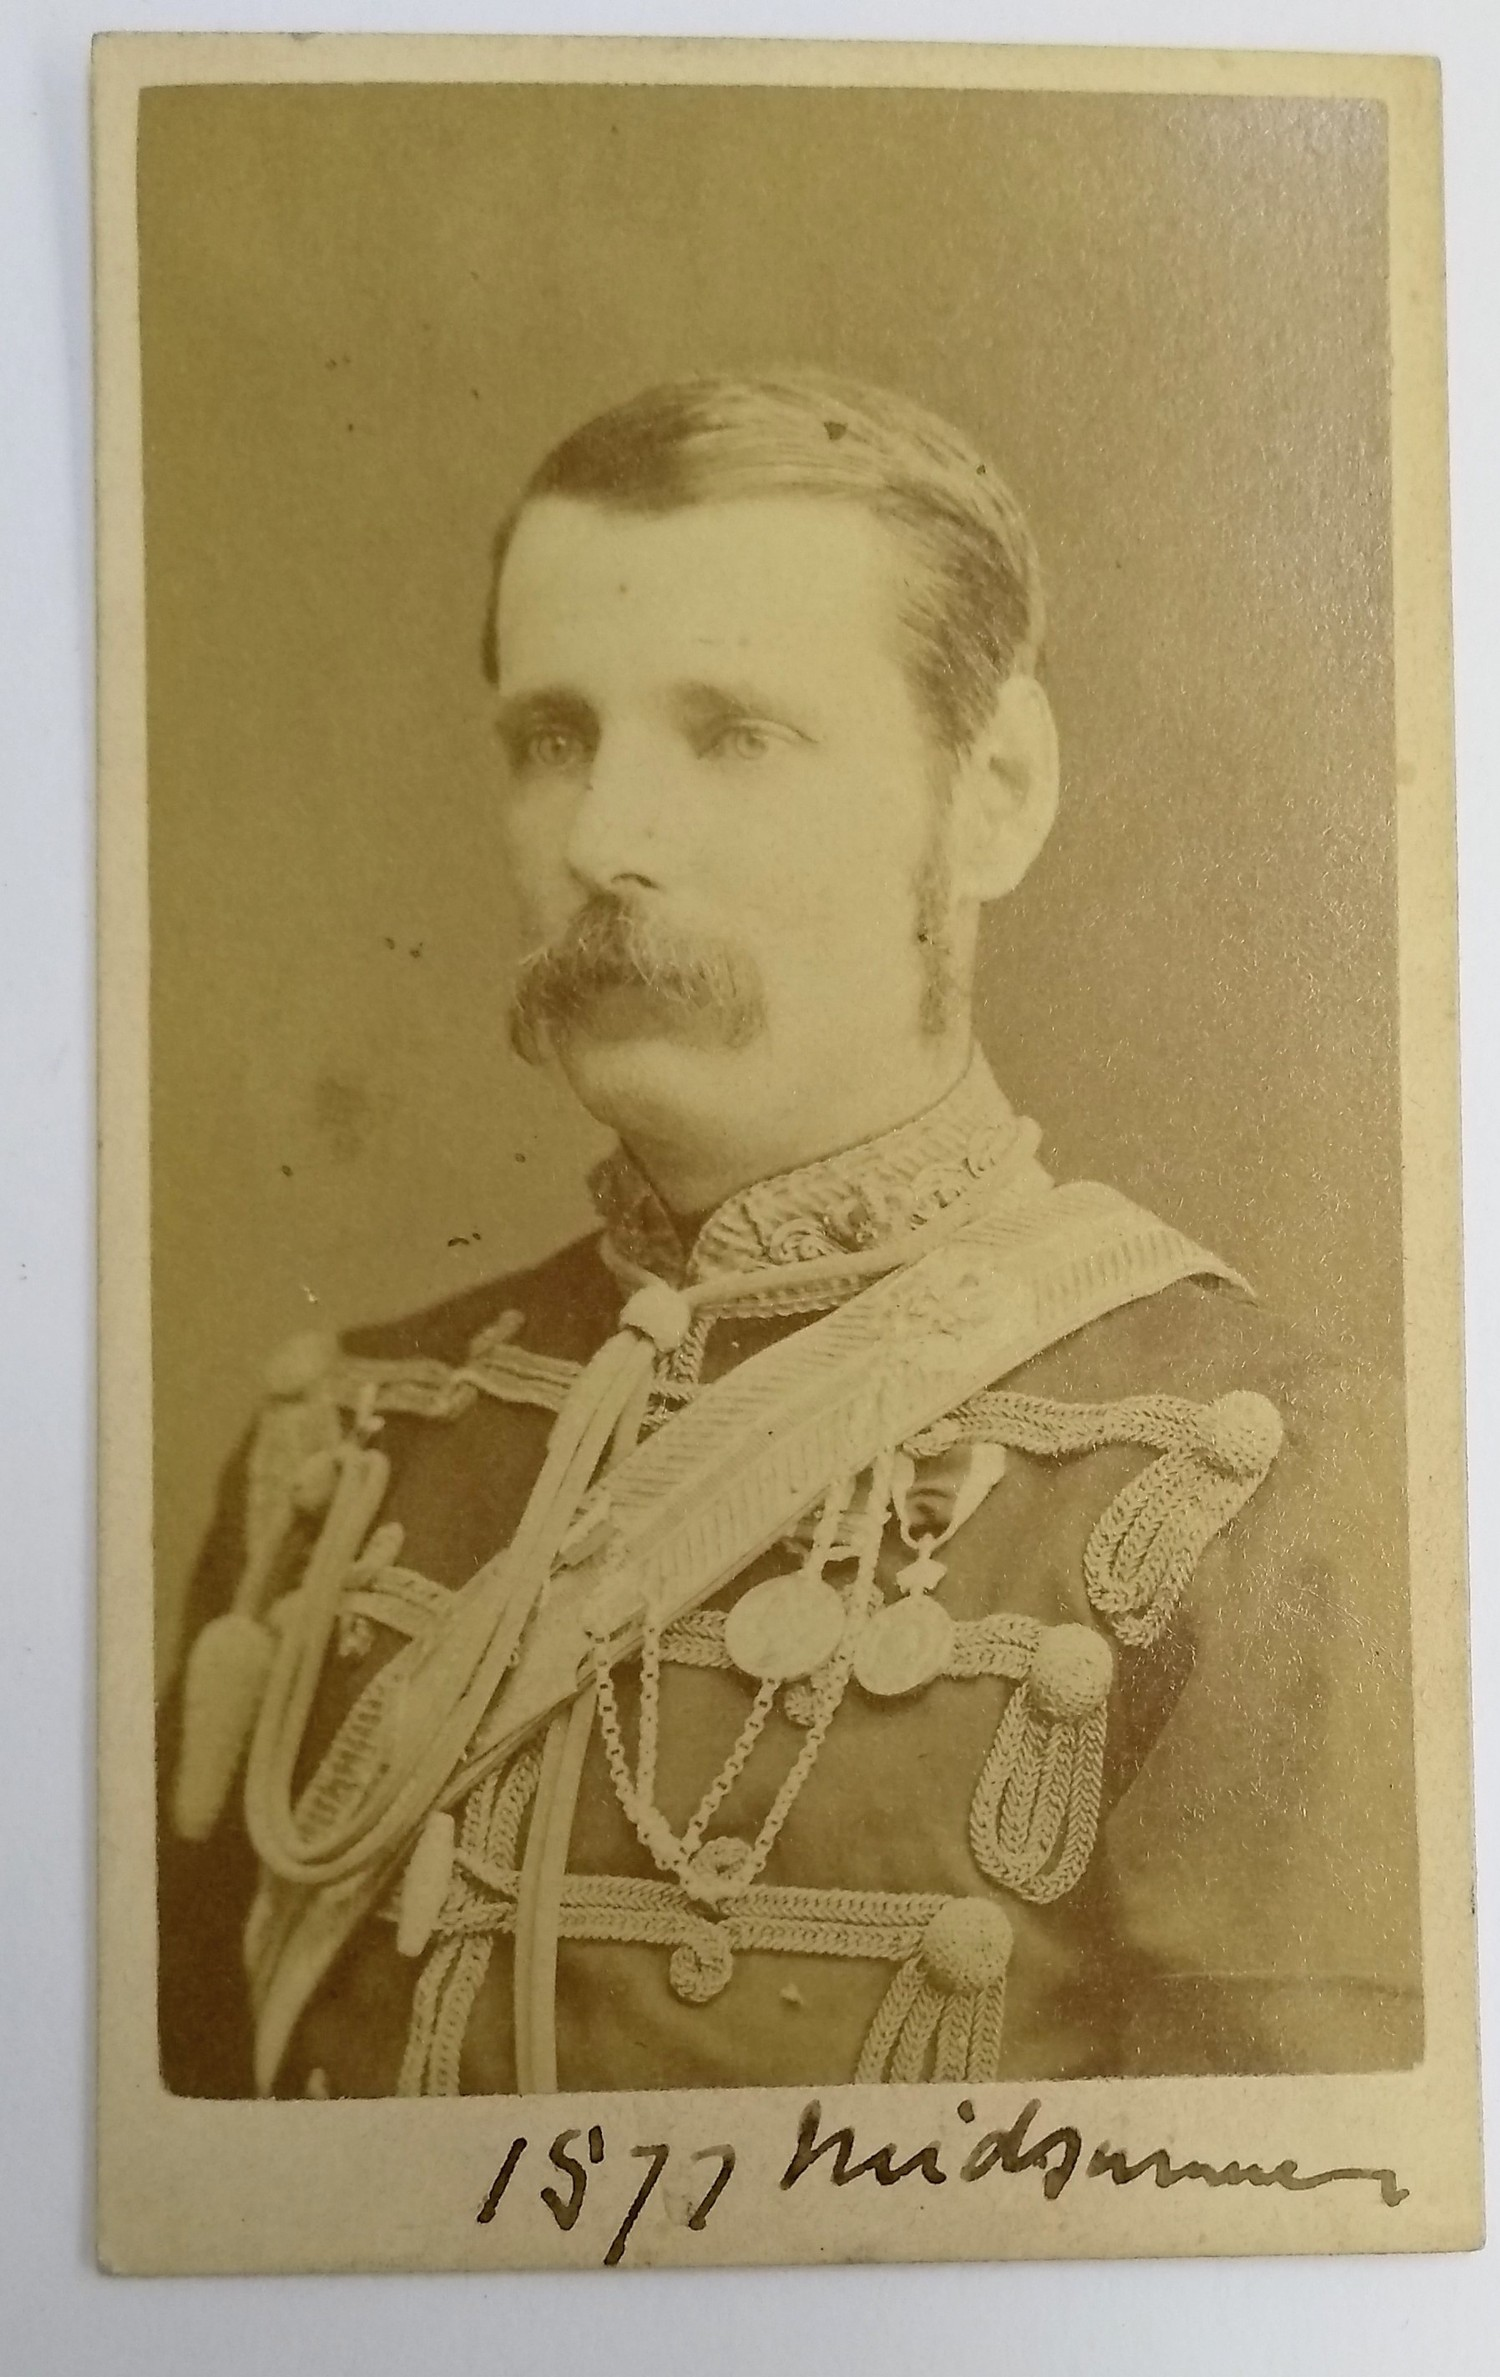 Major-General William Arbuthnot (1838-1893) a very large collection of over 300 pieces of - Image 3 of 7